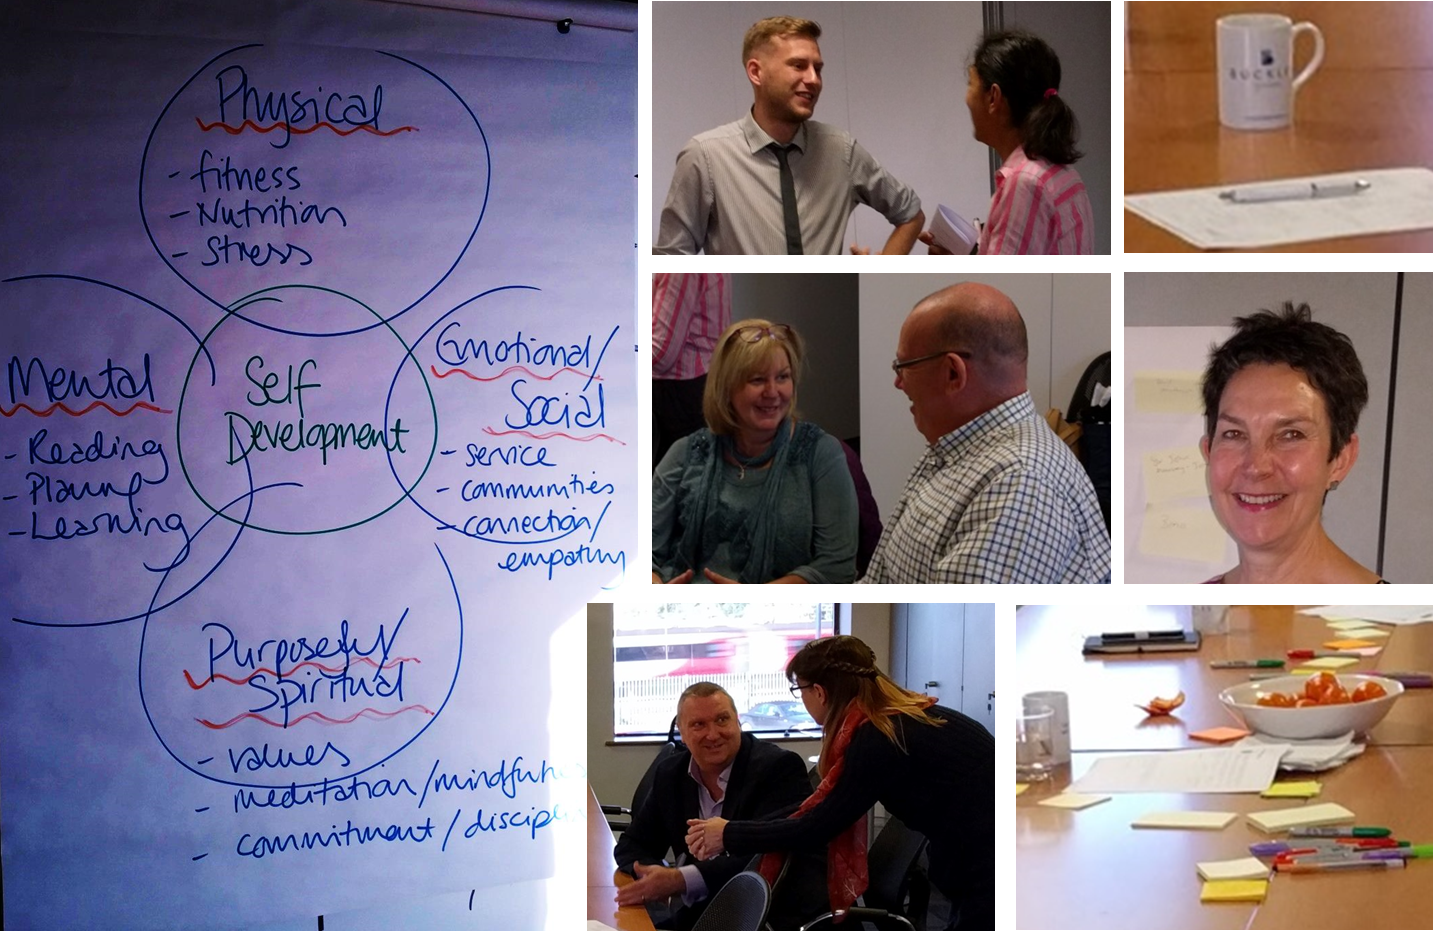 Photos from the Peterborough Learning Breakfast from 7th October 2017 where we discussed Stephen Covey's 7 Habits, and how they can help us with our personal effectiveness.